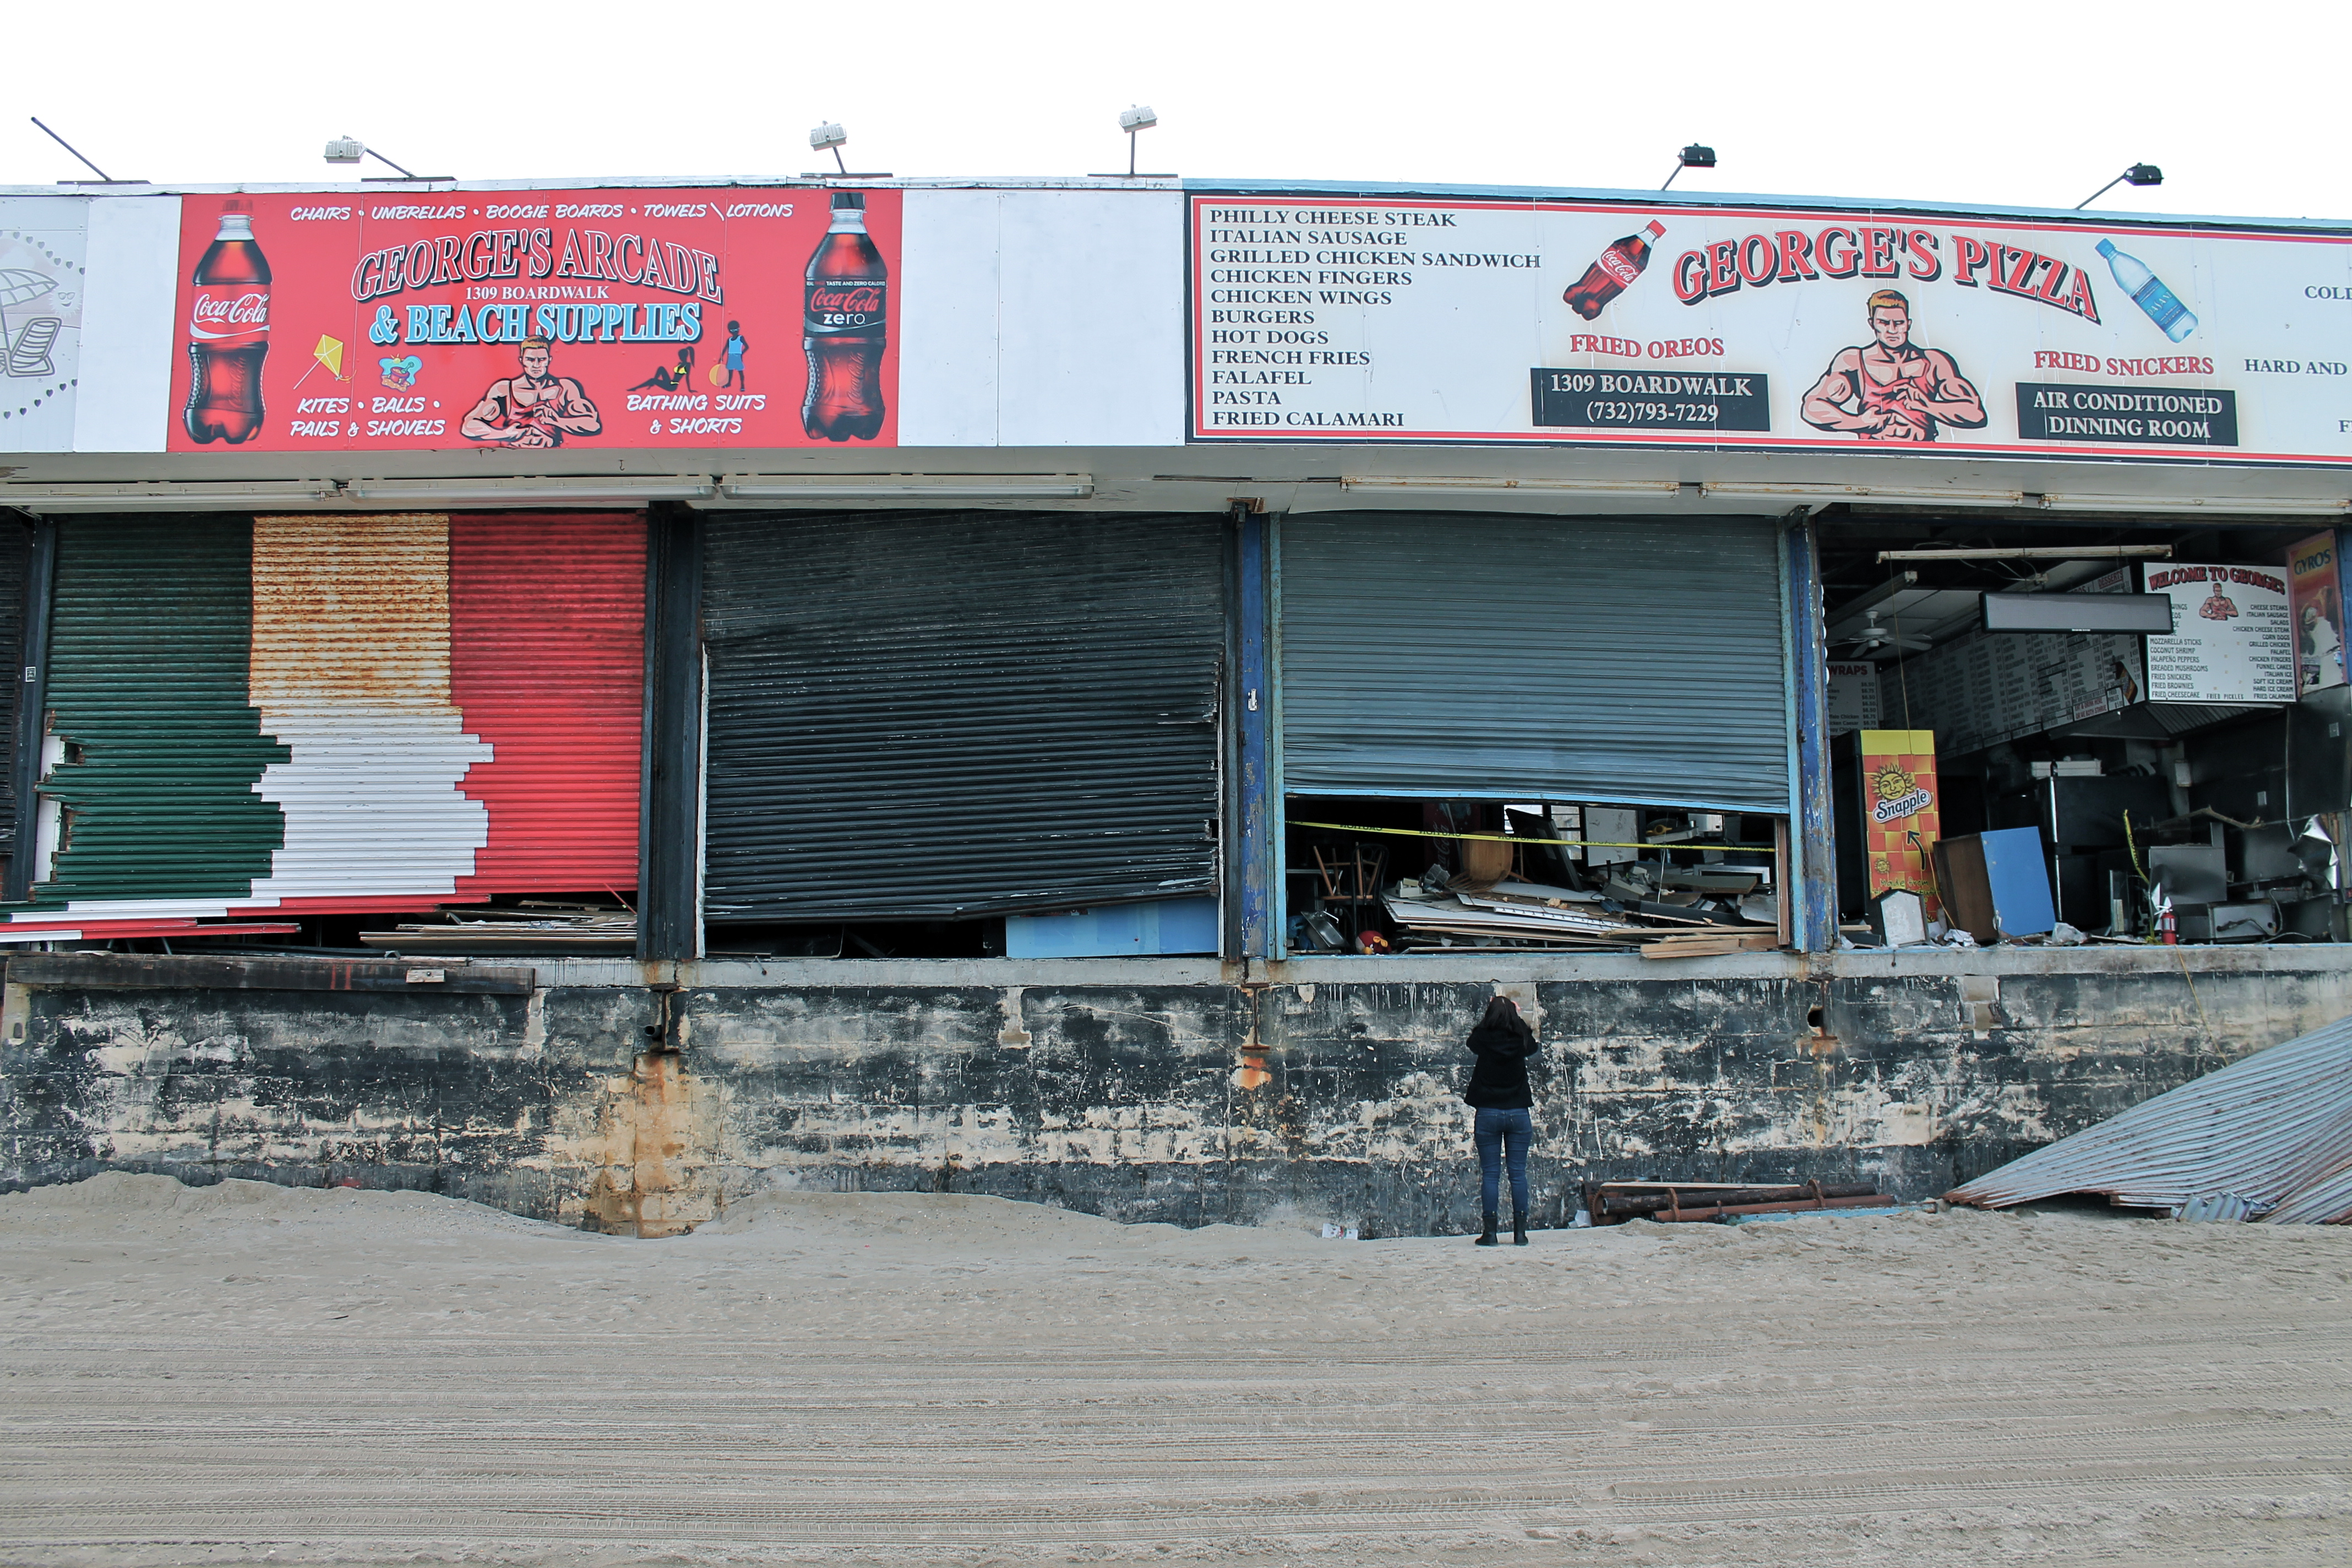 seaside heights nearly 4 months after hurricane sandy